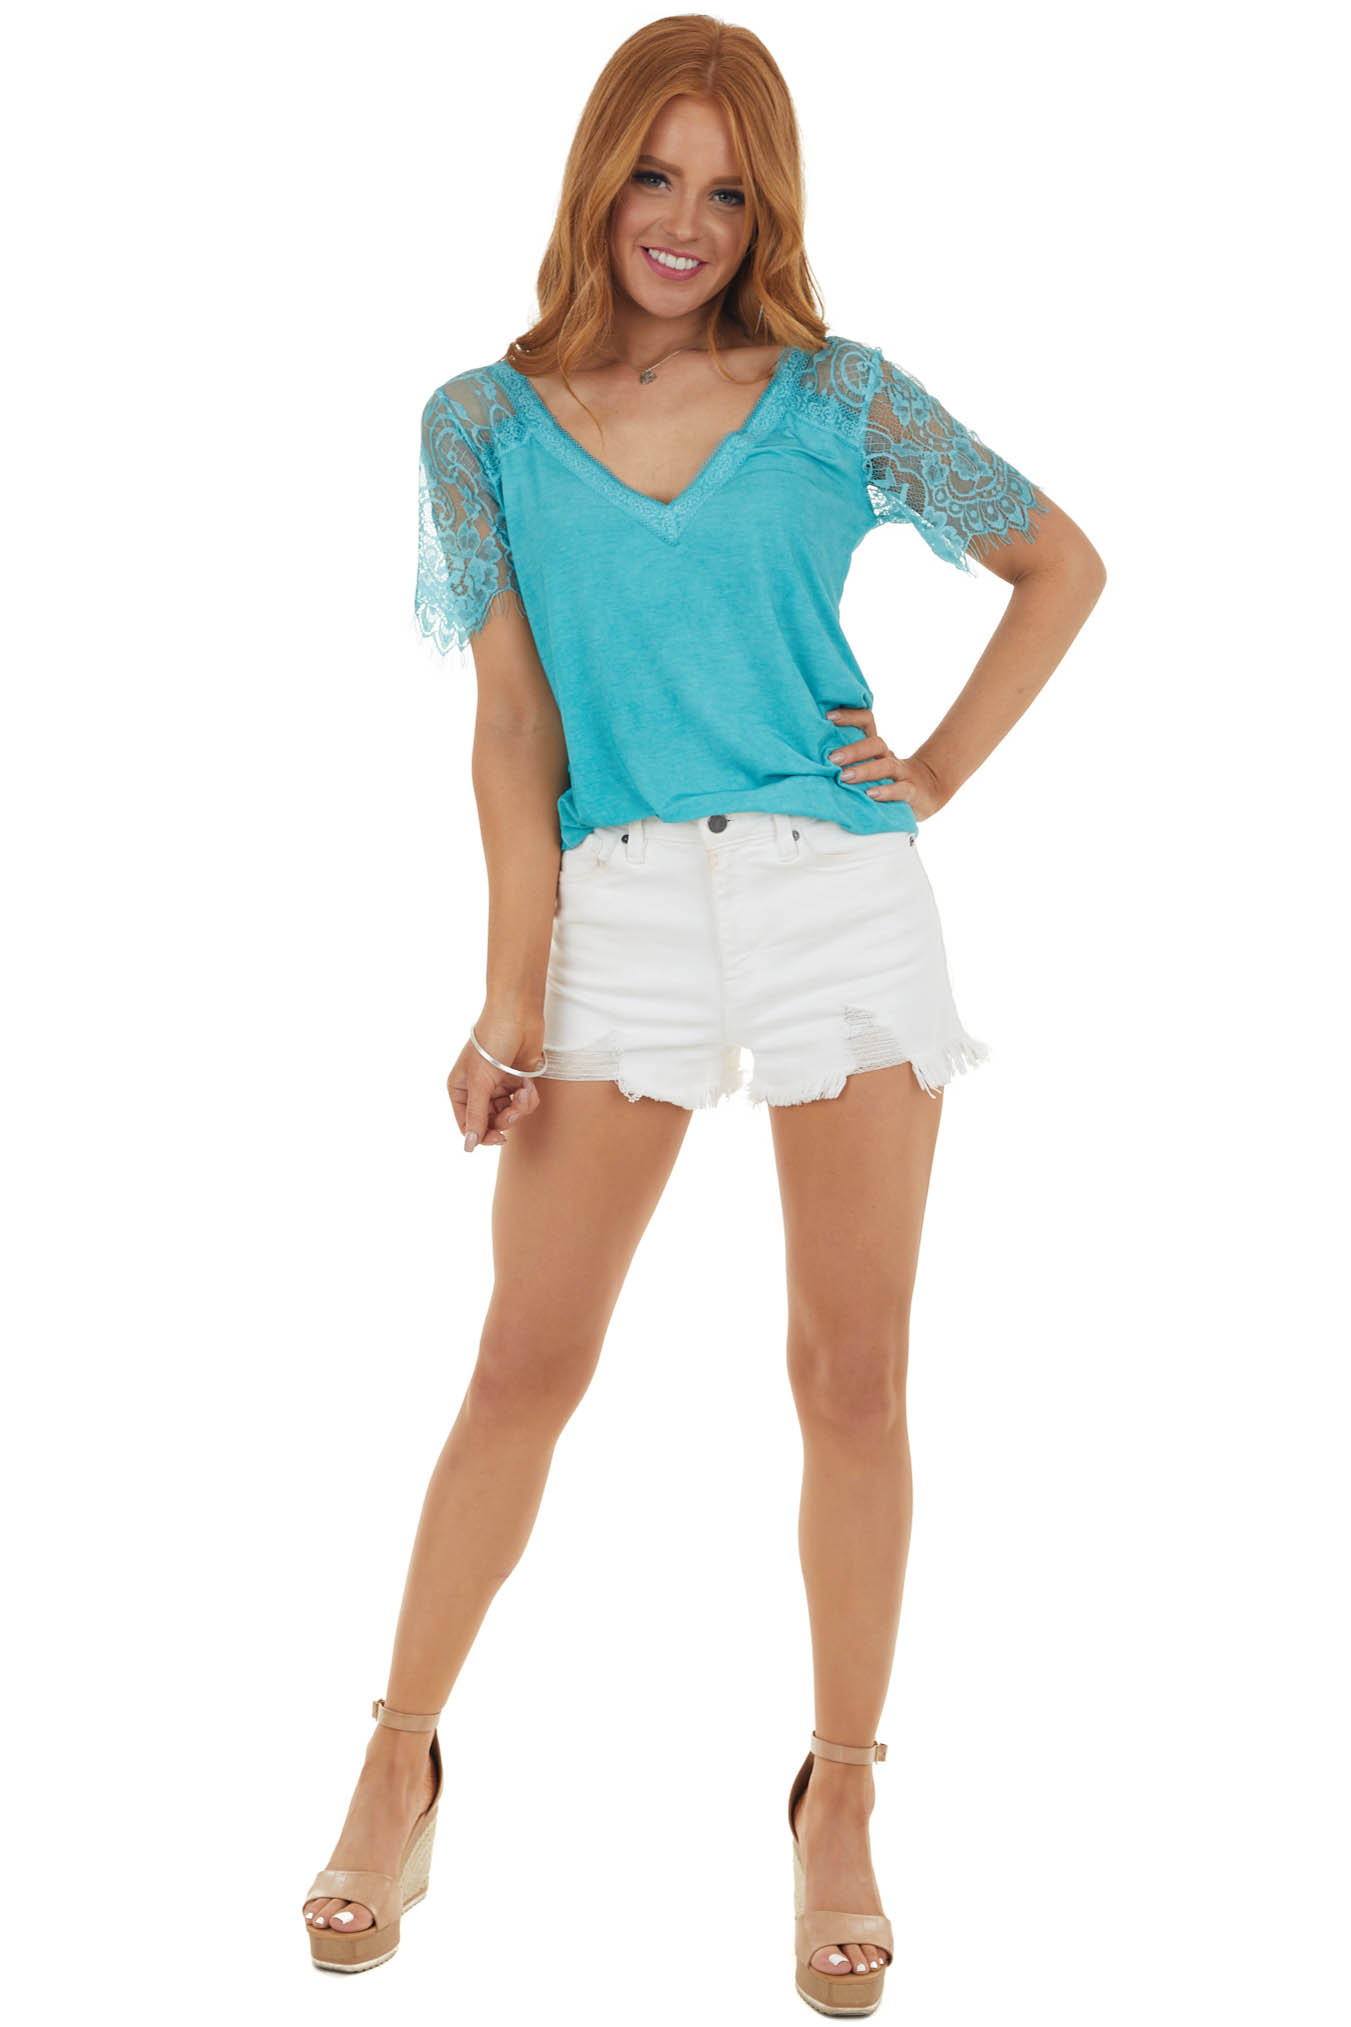 Teal V Neck Short Sleeve Top with Lace Detail